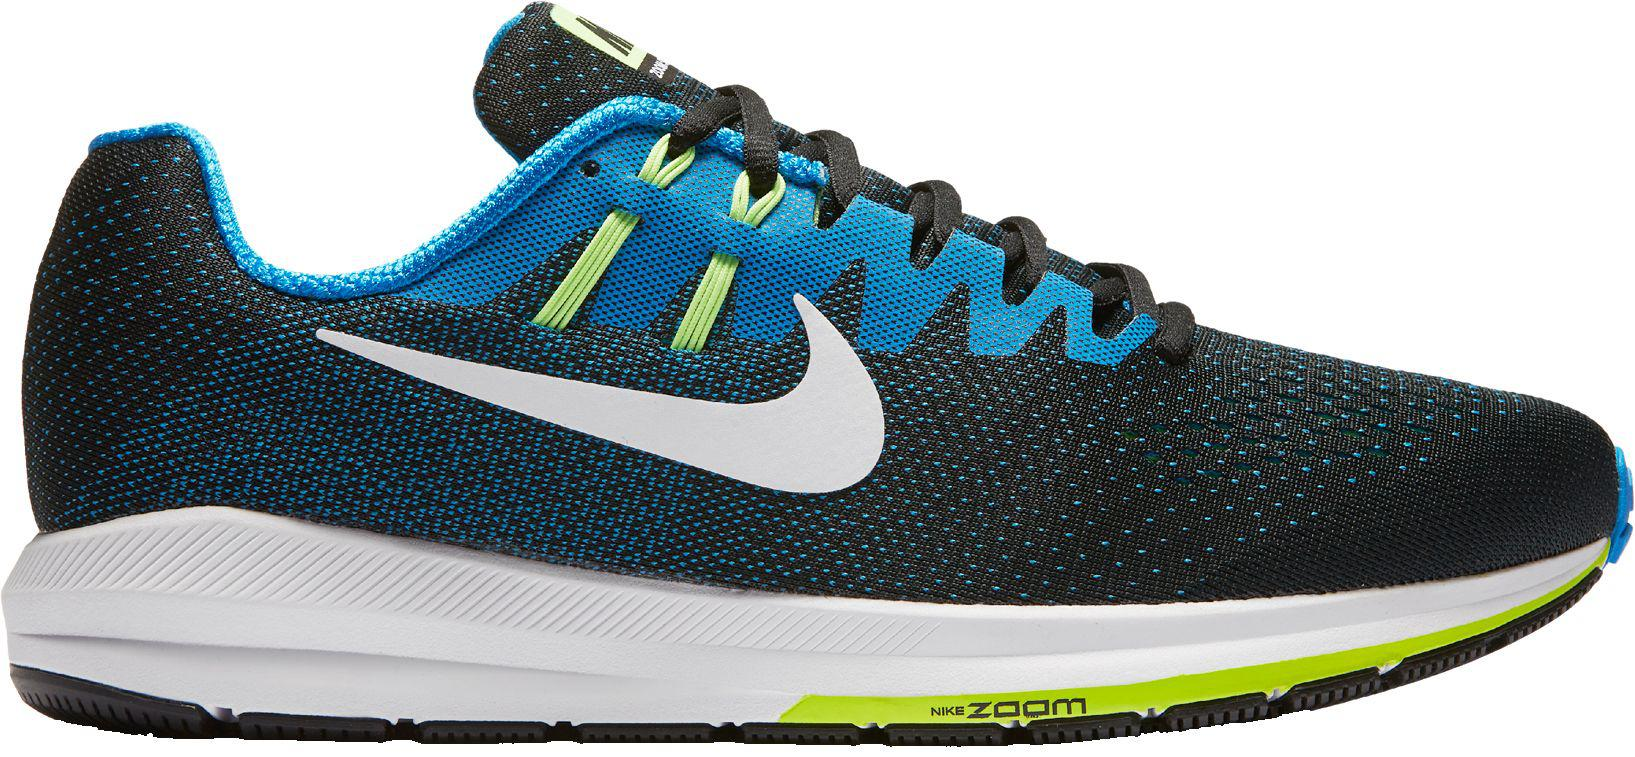 competitive price b0132 c43b4 Lyst - Nike Air Zoom Structure 20 Running Shoes in Blue for Men